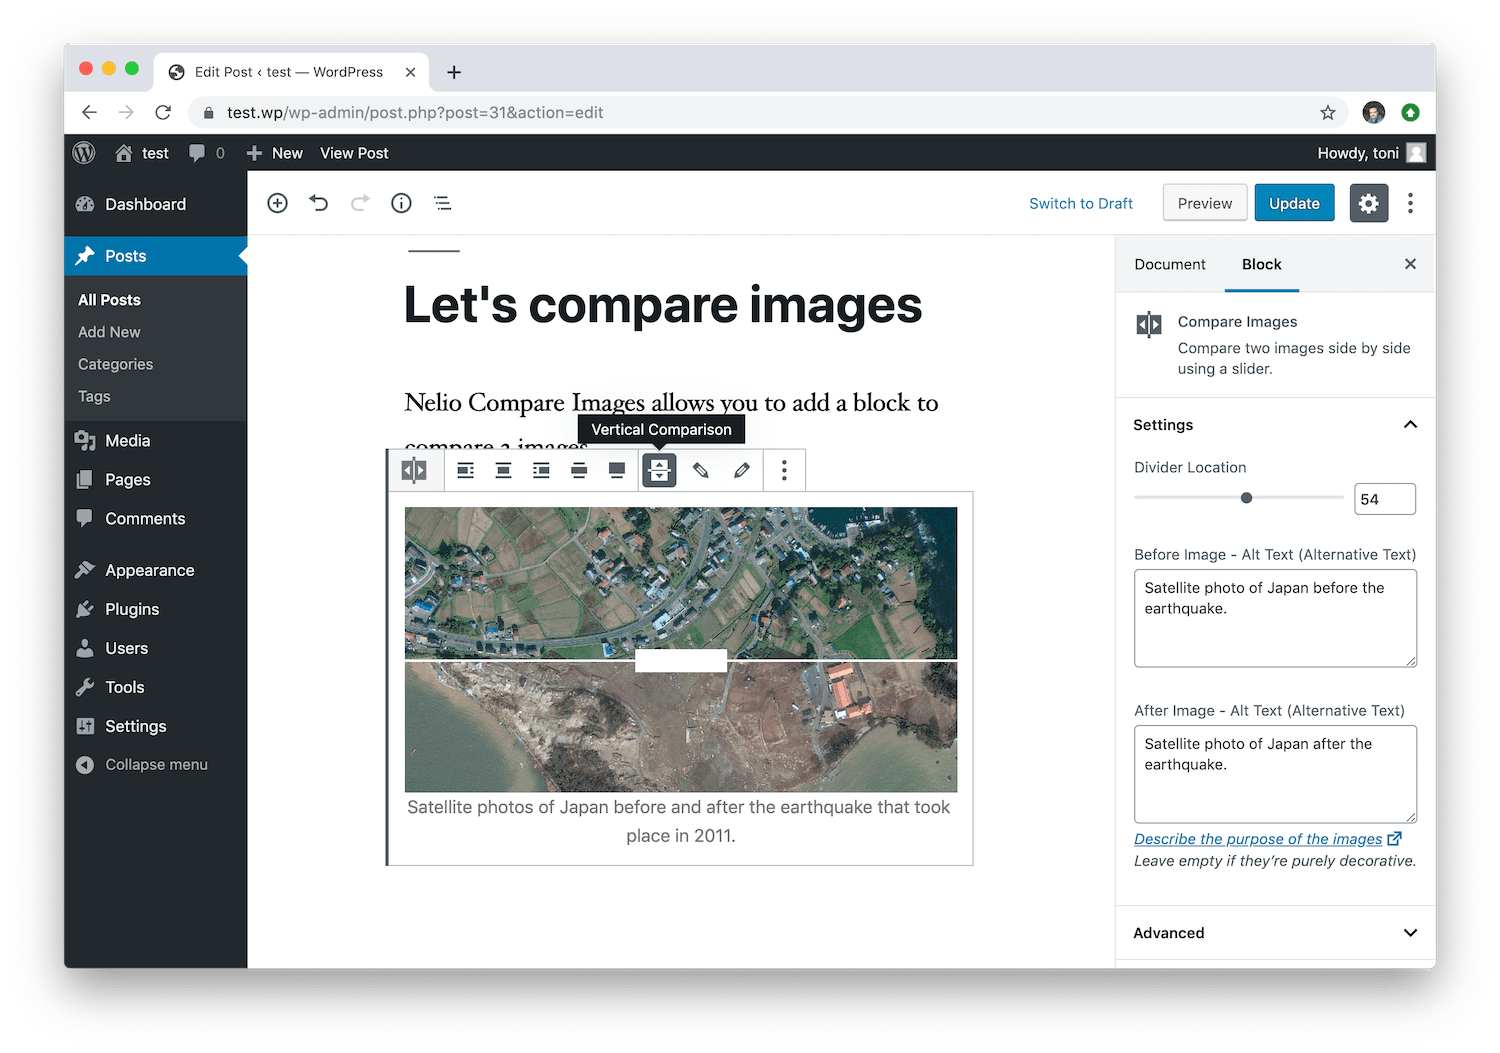 The Nelio Compare Images block allows you to compare two images both vertically and horizontally.